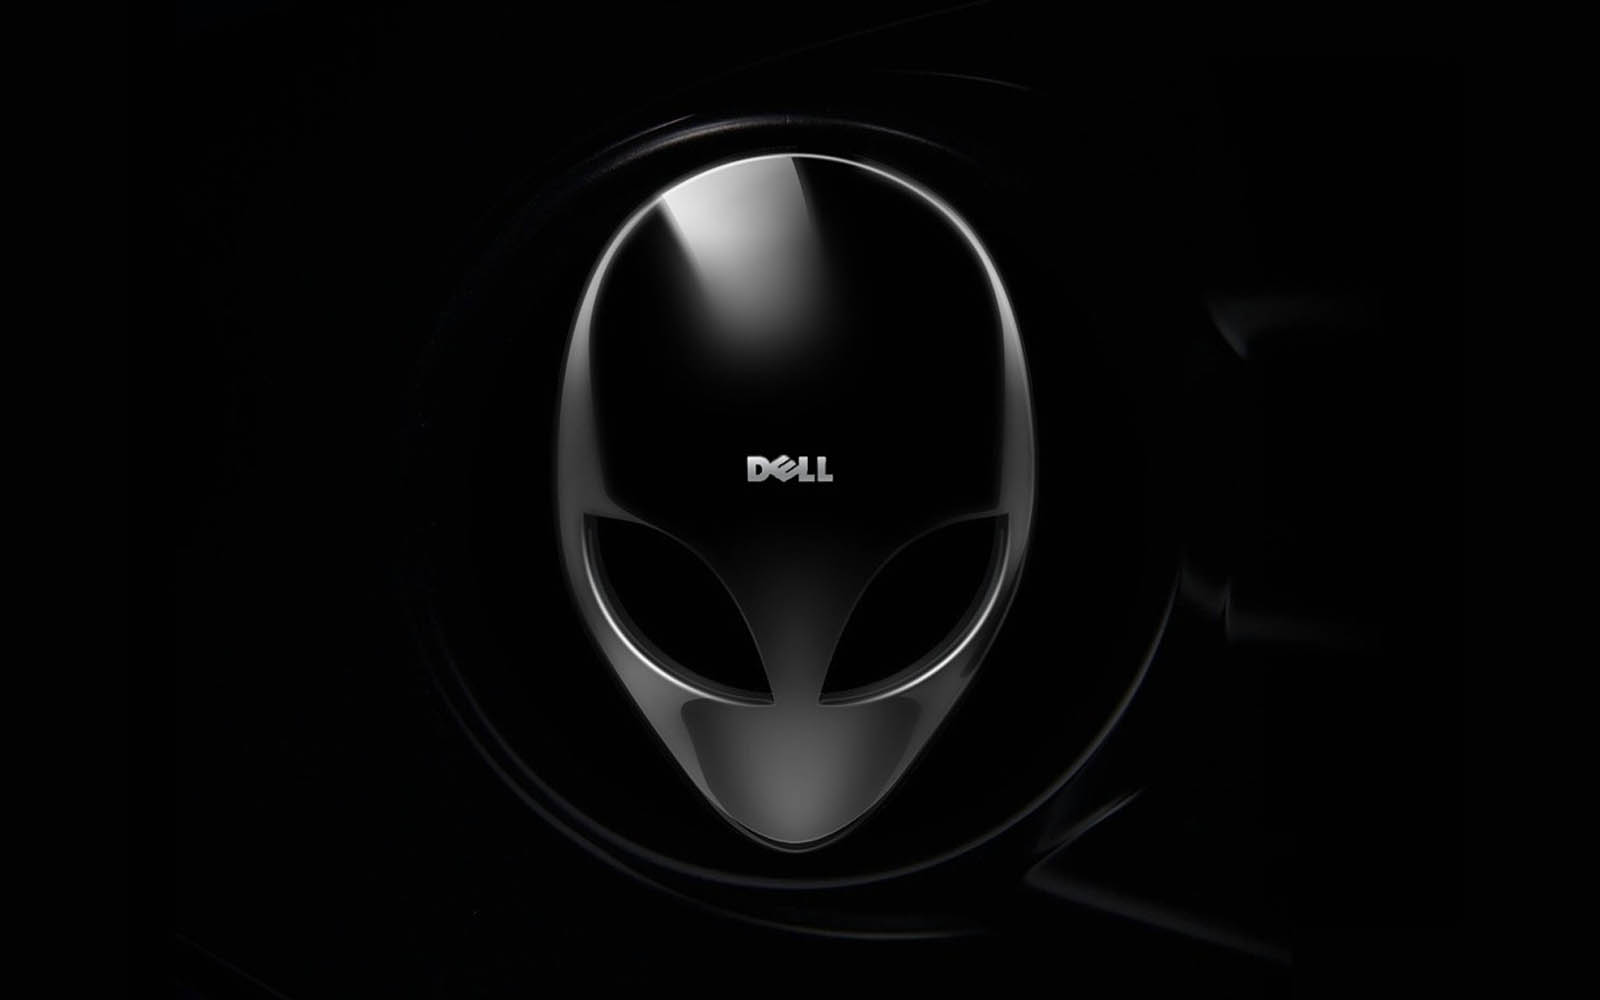 48 Dell 3d Wallpaper Pictures On Wallpapersafari